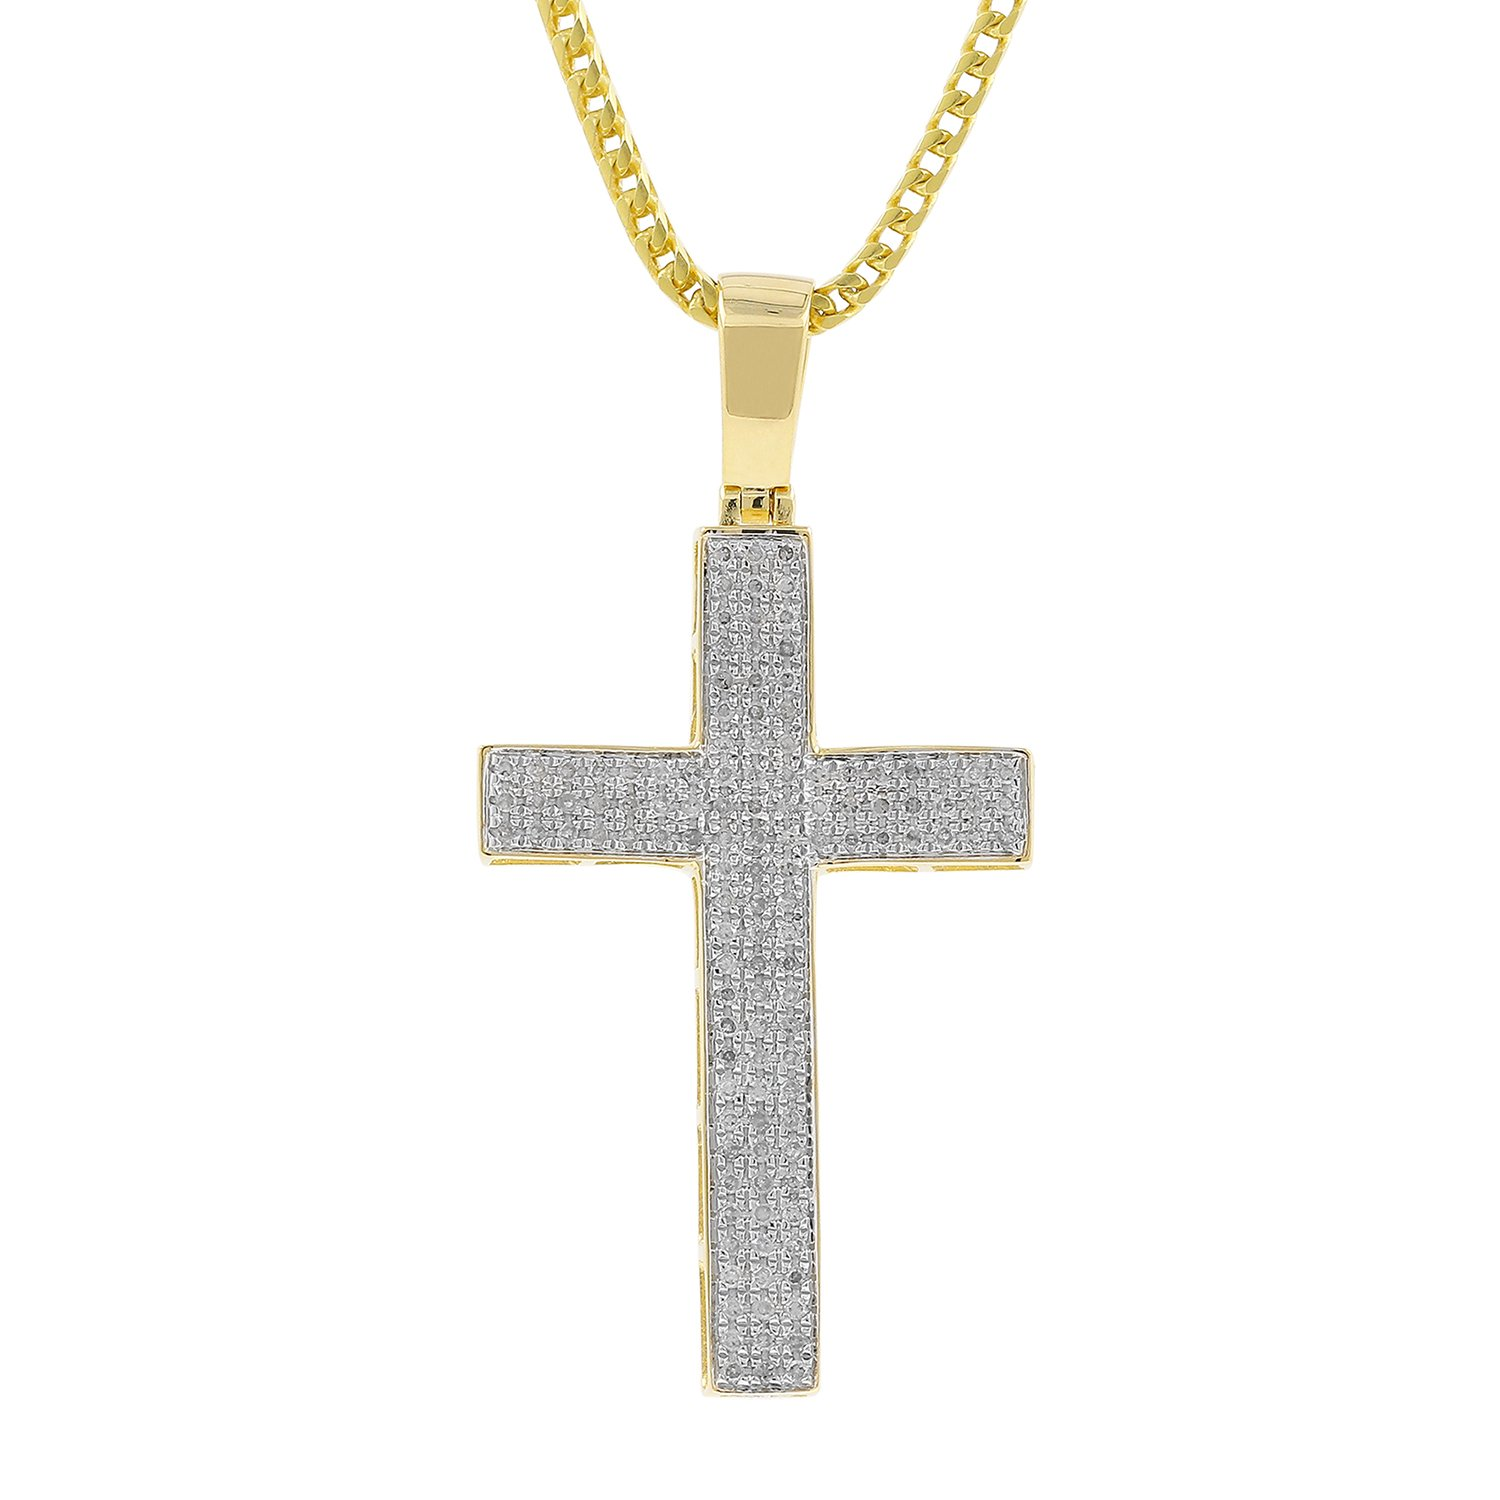 0.56ct Diamond Pave 3 Row Mens Hip Hop Cross Pendant Necklace in Yellow Gold Over 925 Silver (I-J, I2-I3)